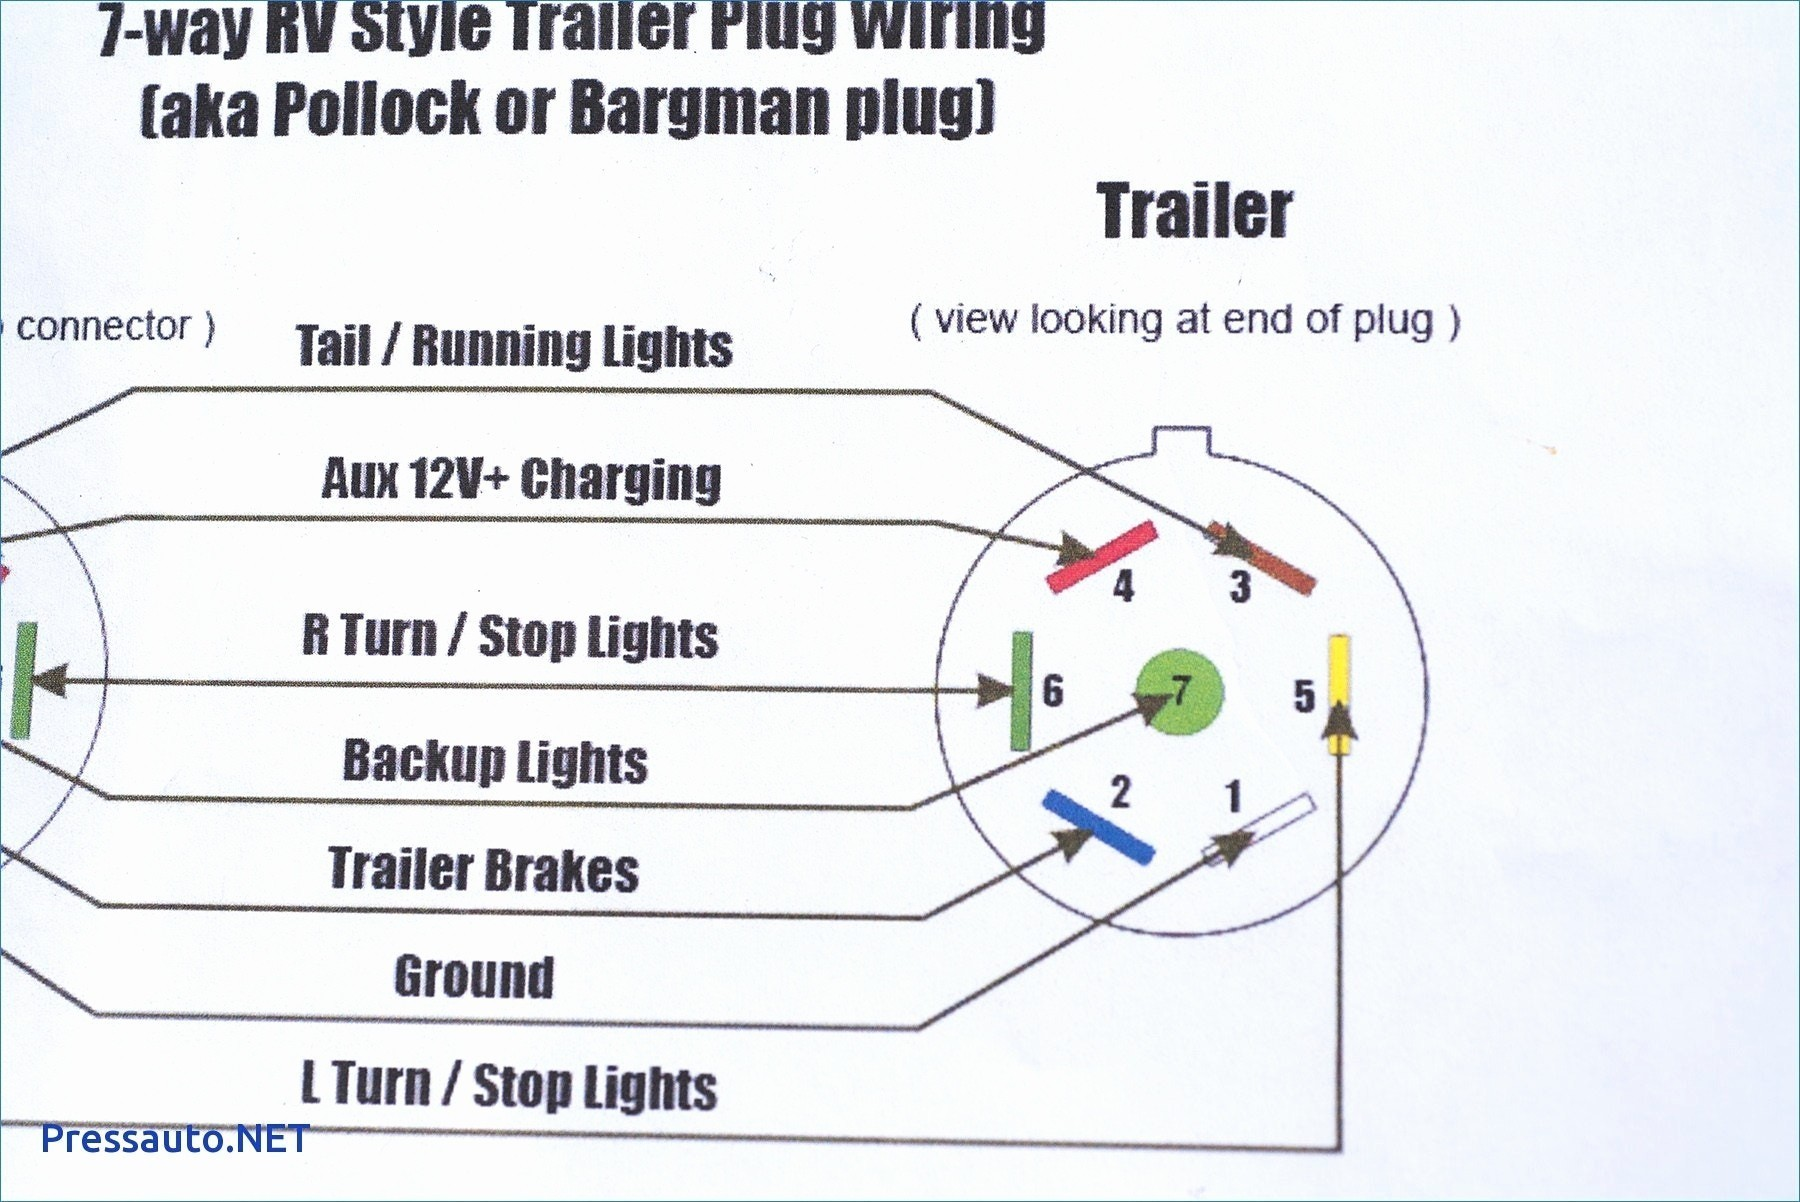 Starcraft Trailer Wiring Diagram Another Blog About For Tent Boat Rh Detoxicrecenze Com Travel